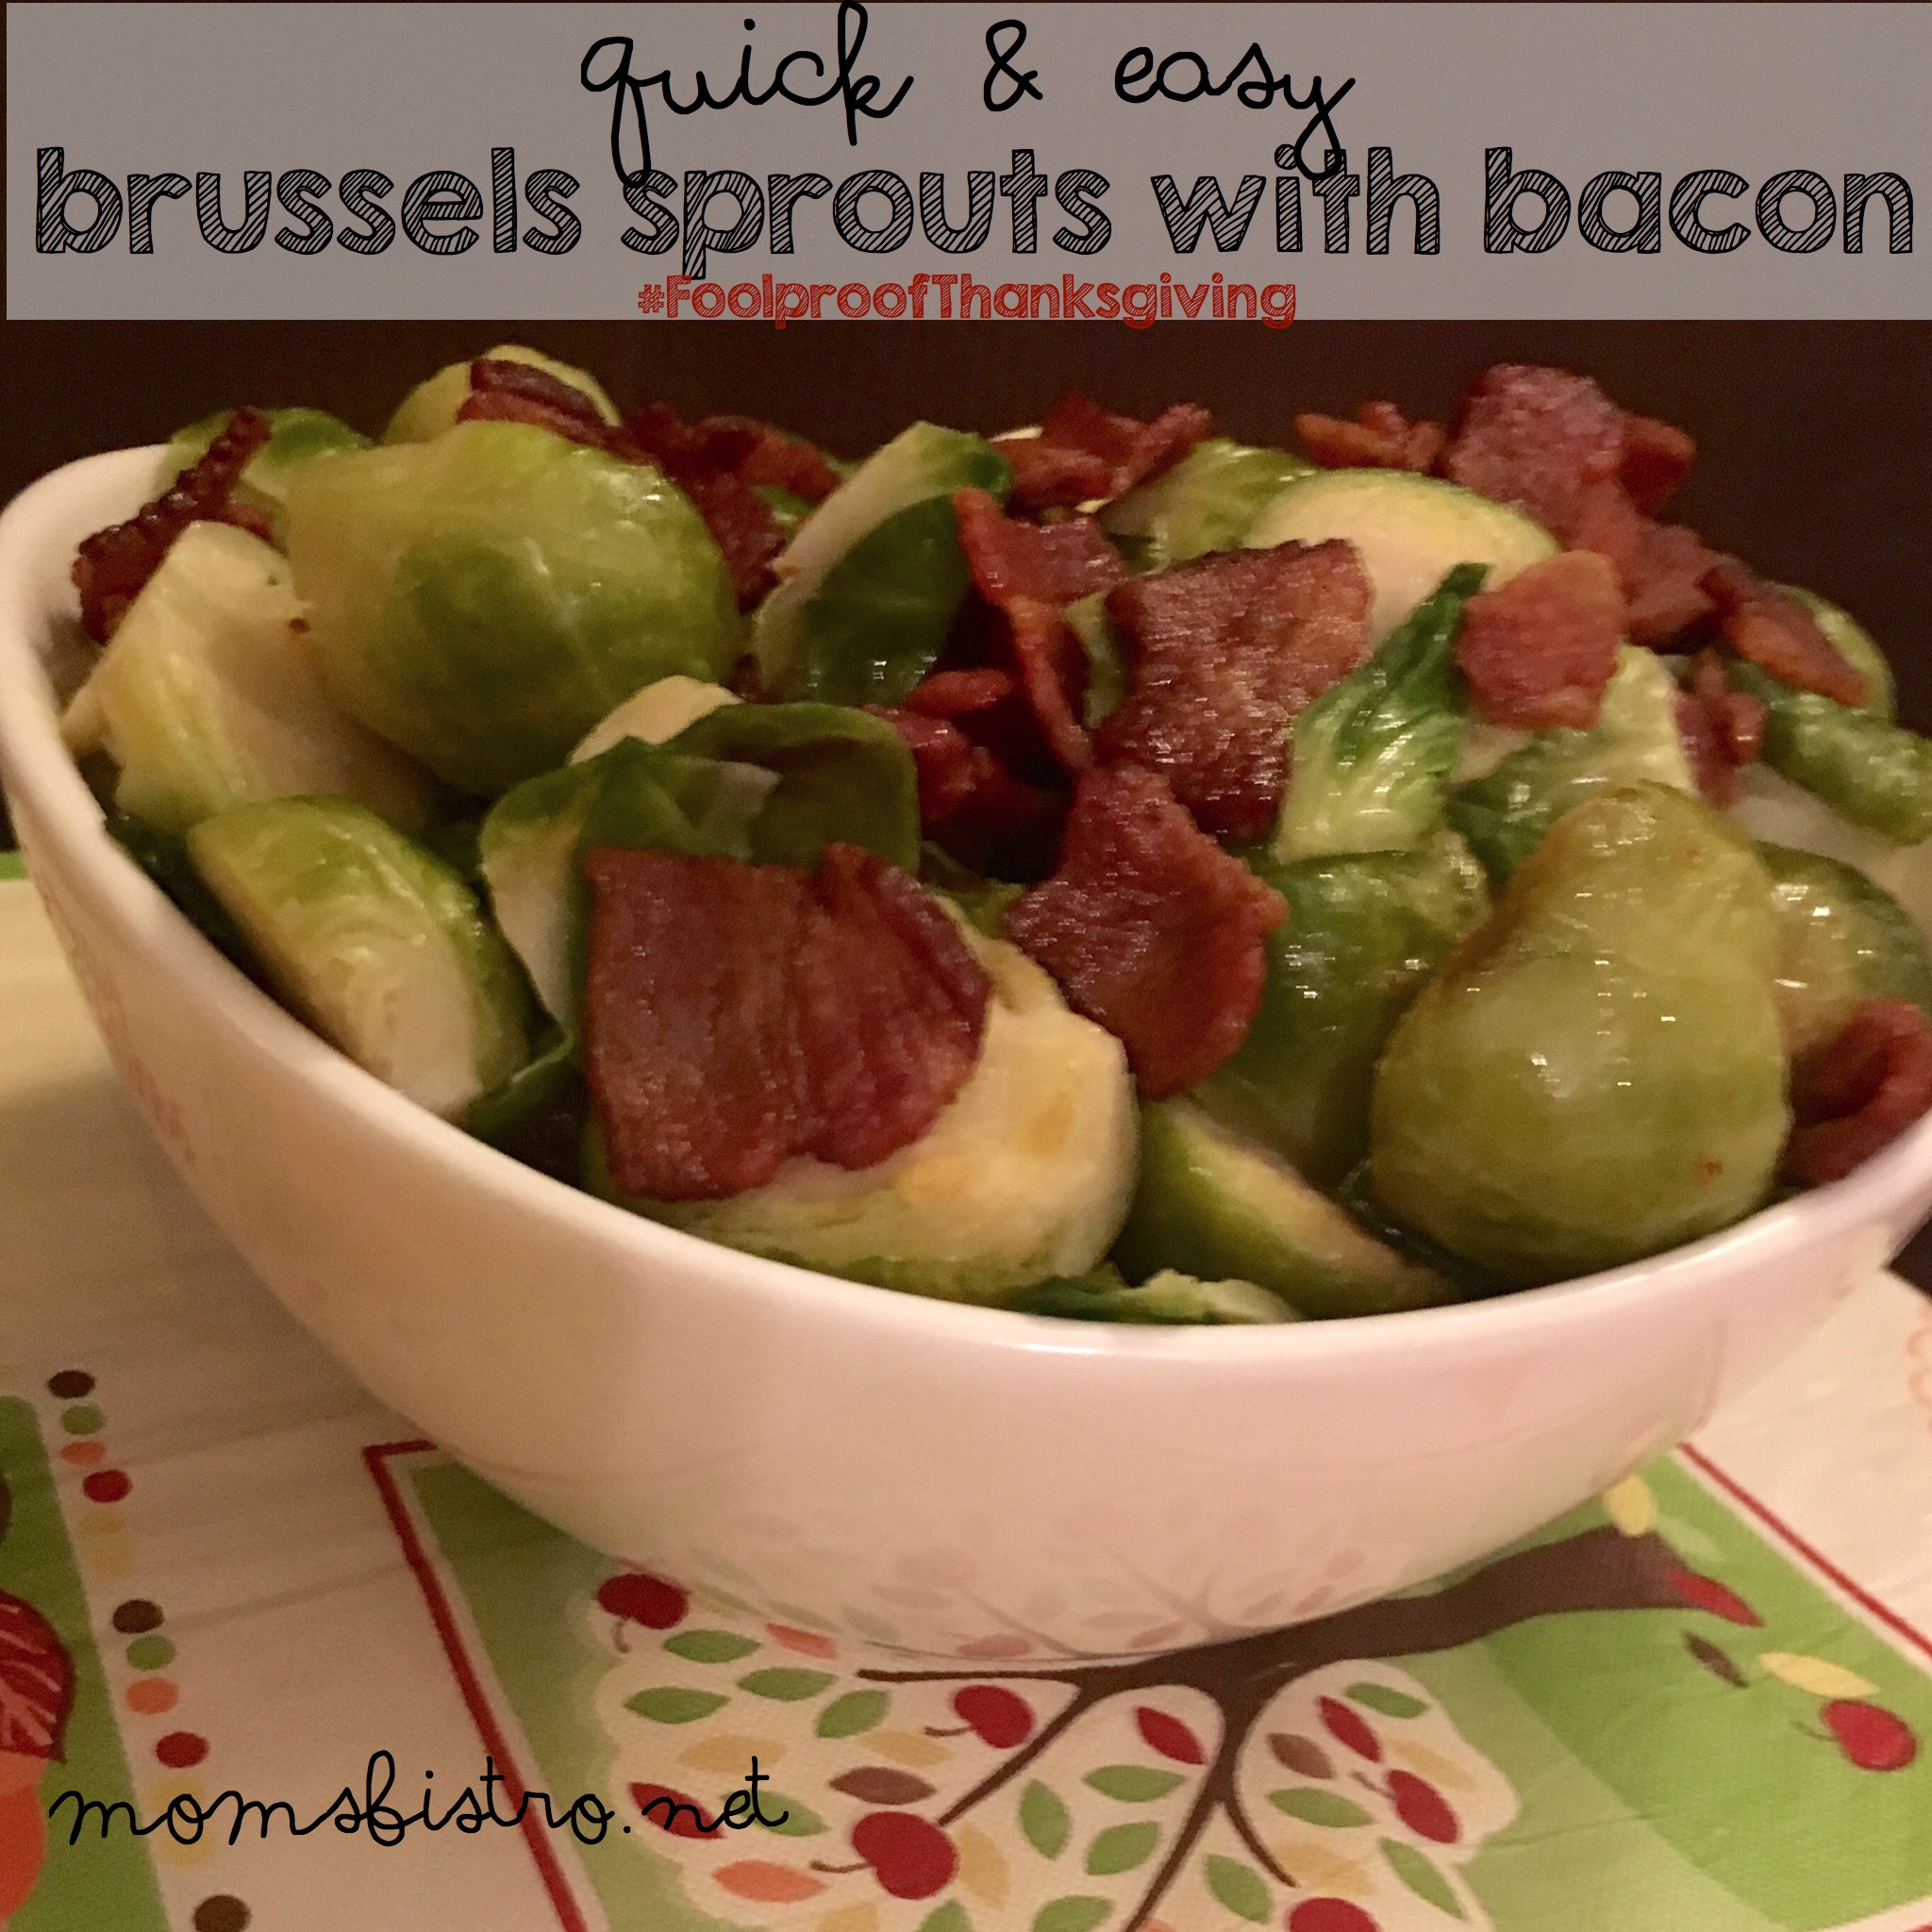 Turn Skeptics Into Believers With This Thanksgiving With This Easy Brussels Sprouts with Bacon Recipe | #FoolproofThanksgiving